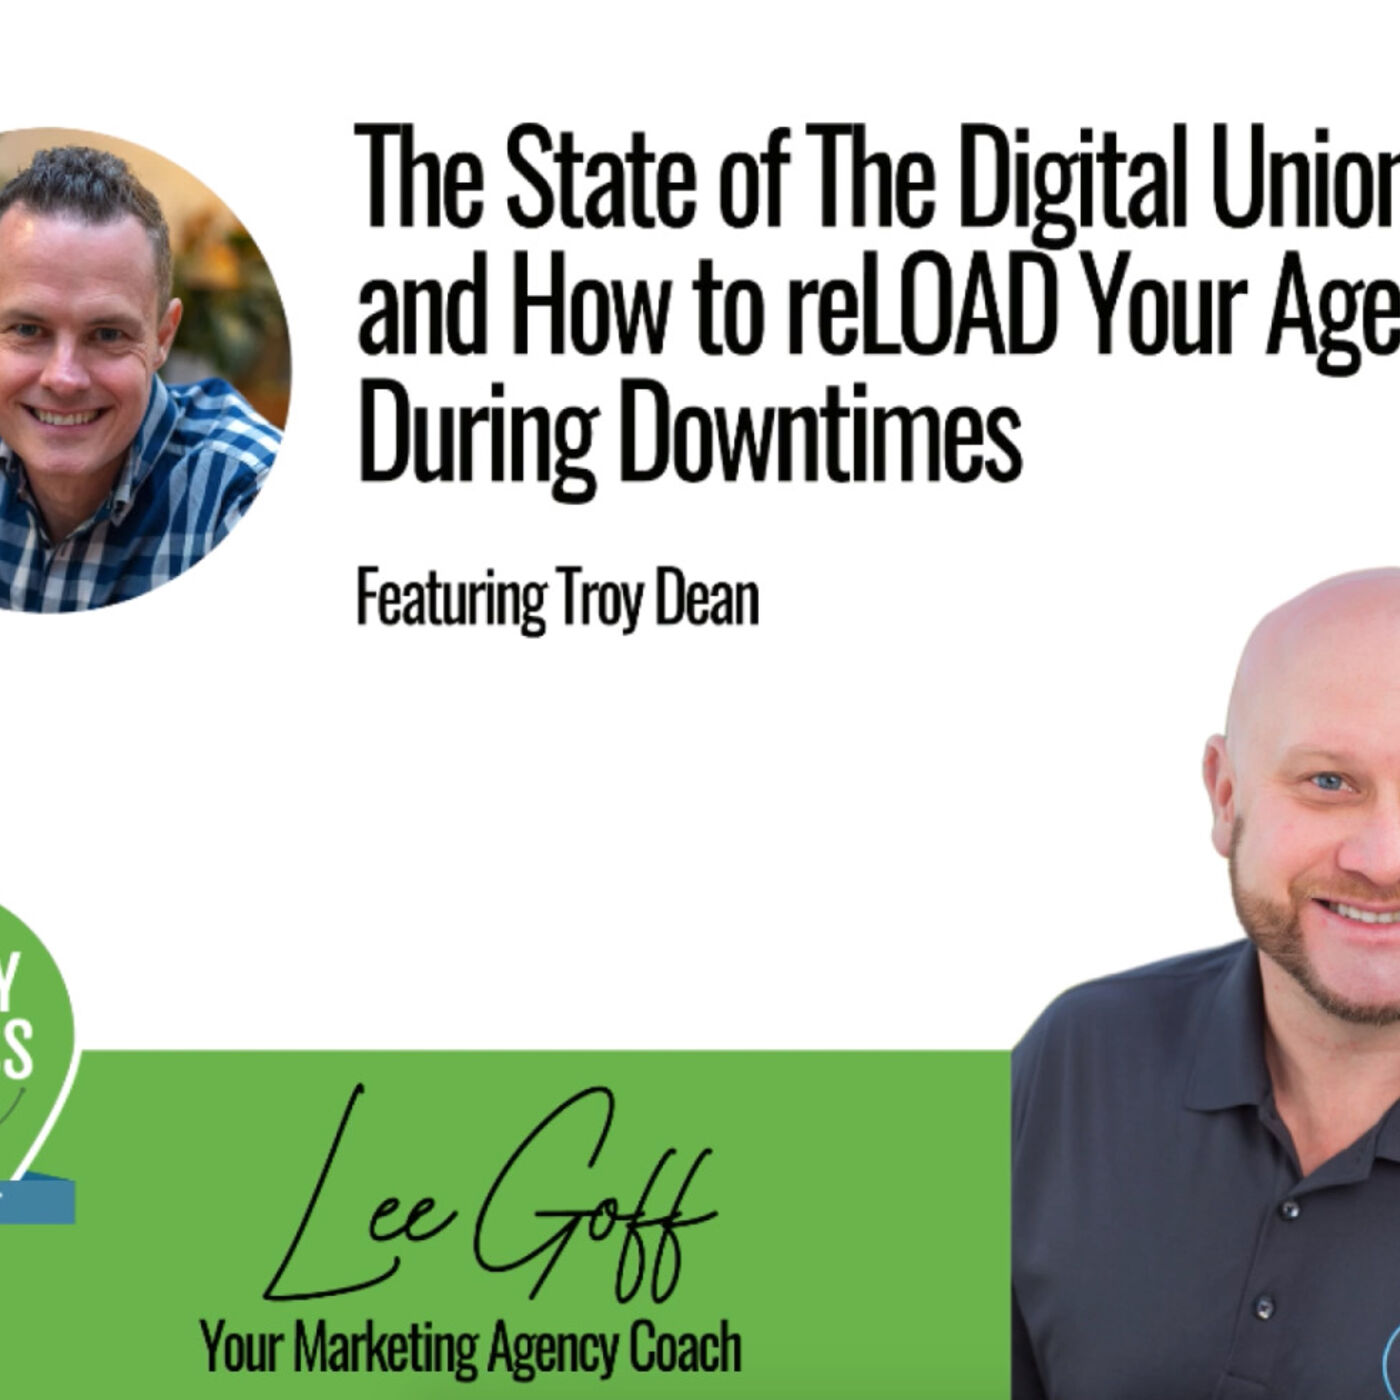 Troy Dean - State Of The Digital Union And How to reLOAD Your Agency During Down Times!- Agency Success GPS Podcast - Lee Goff - Episode 3